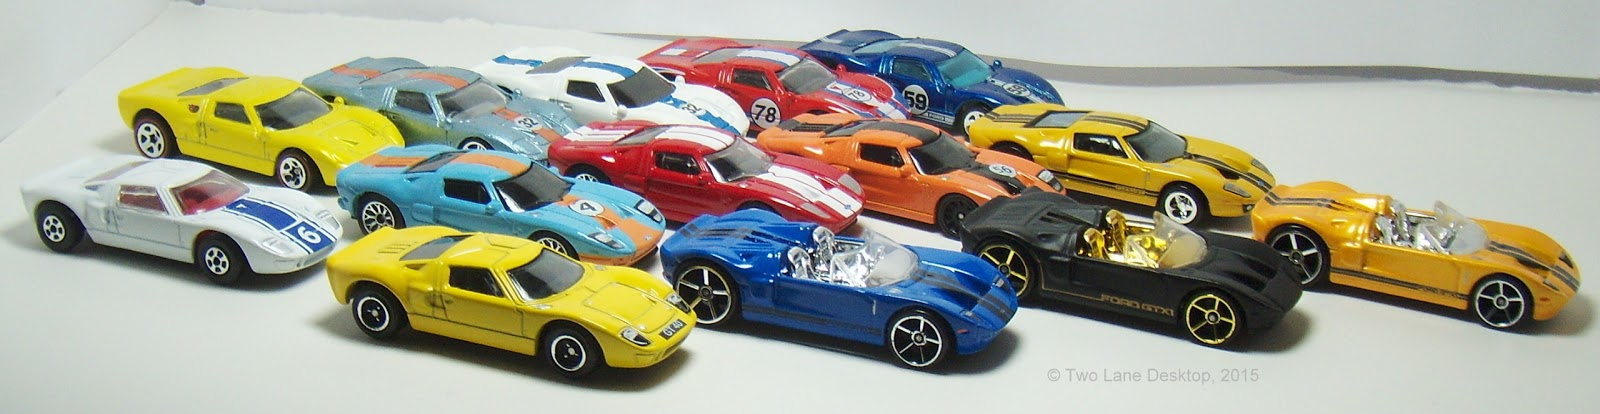 The Ford Gt And Gts From Hot Wheels Matchbox And Johnny Lightning